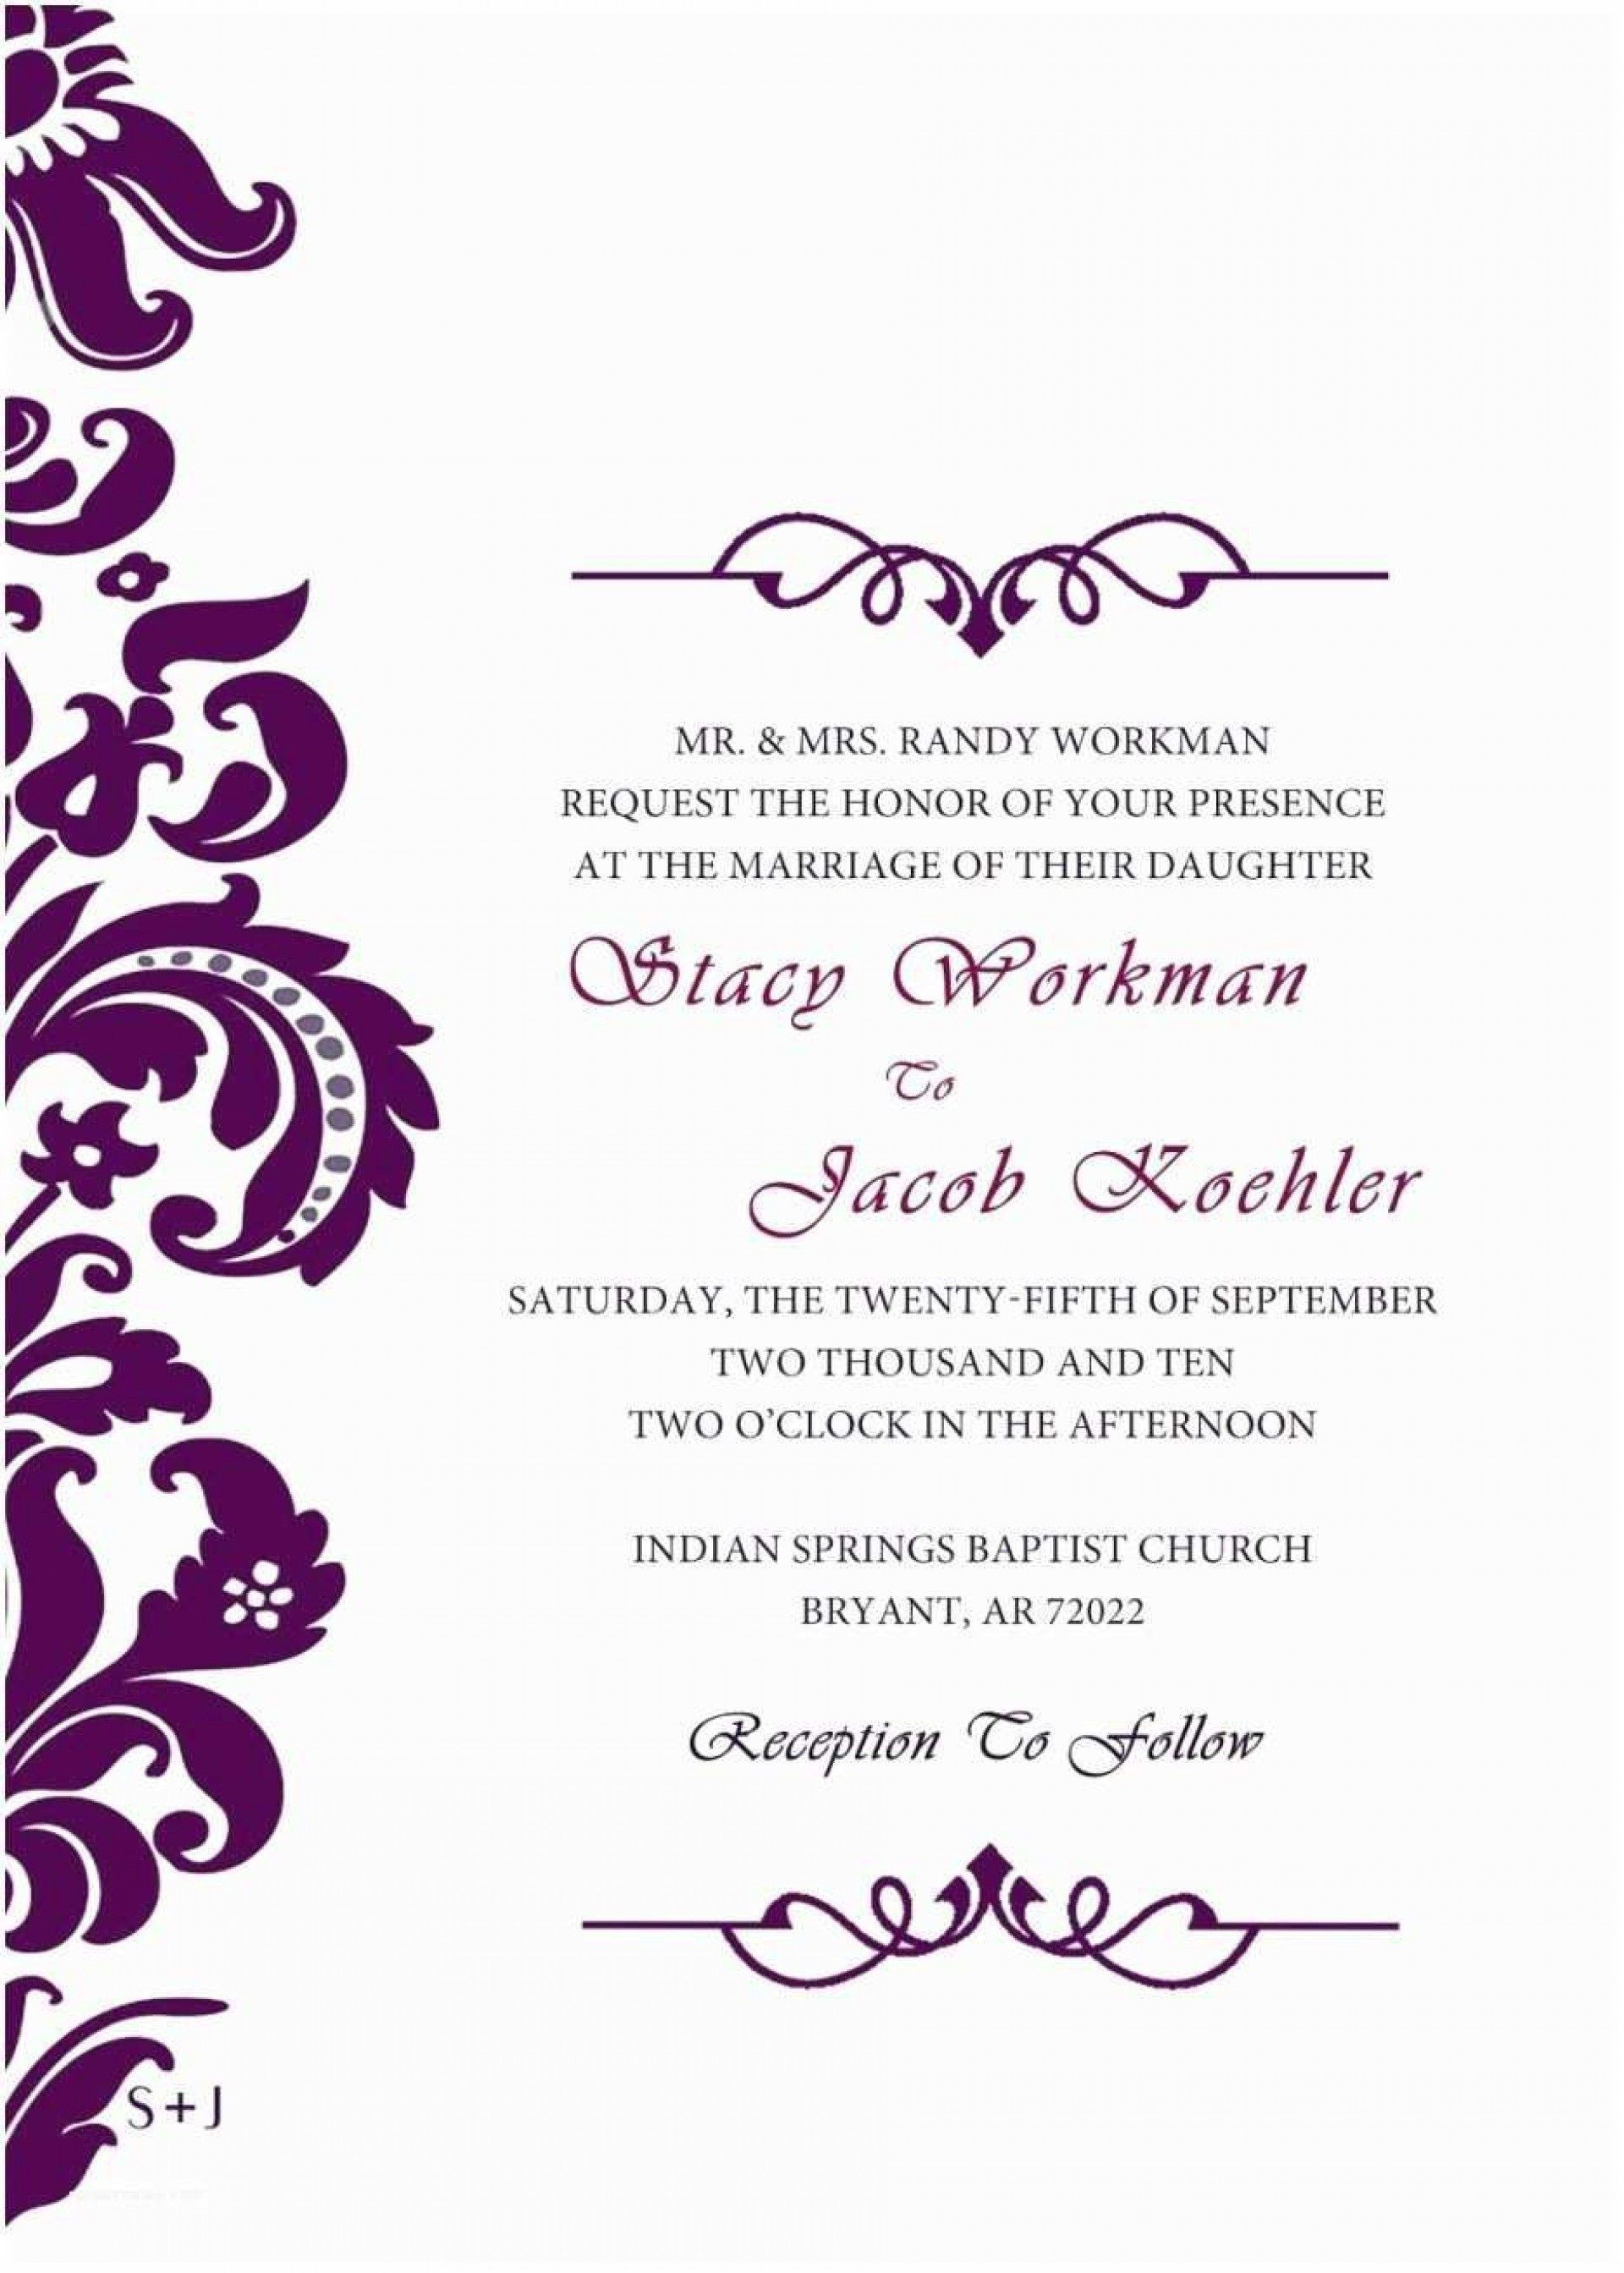 008 Excellent Free Online Indian Invitation Template High Resolution  Templates Engagement Card Maker Wedding1920